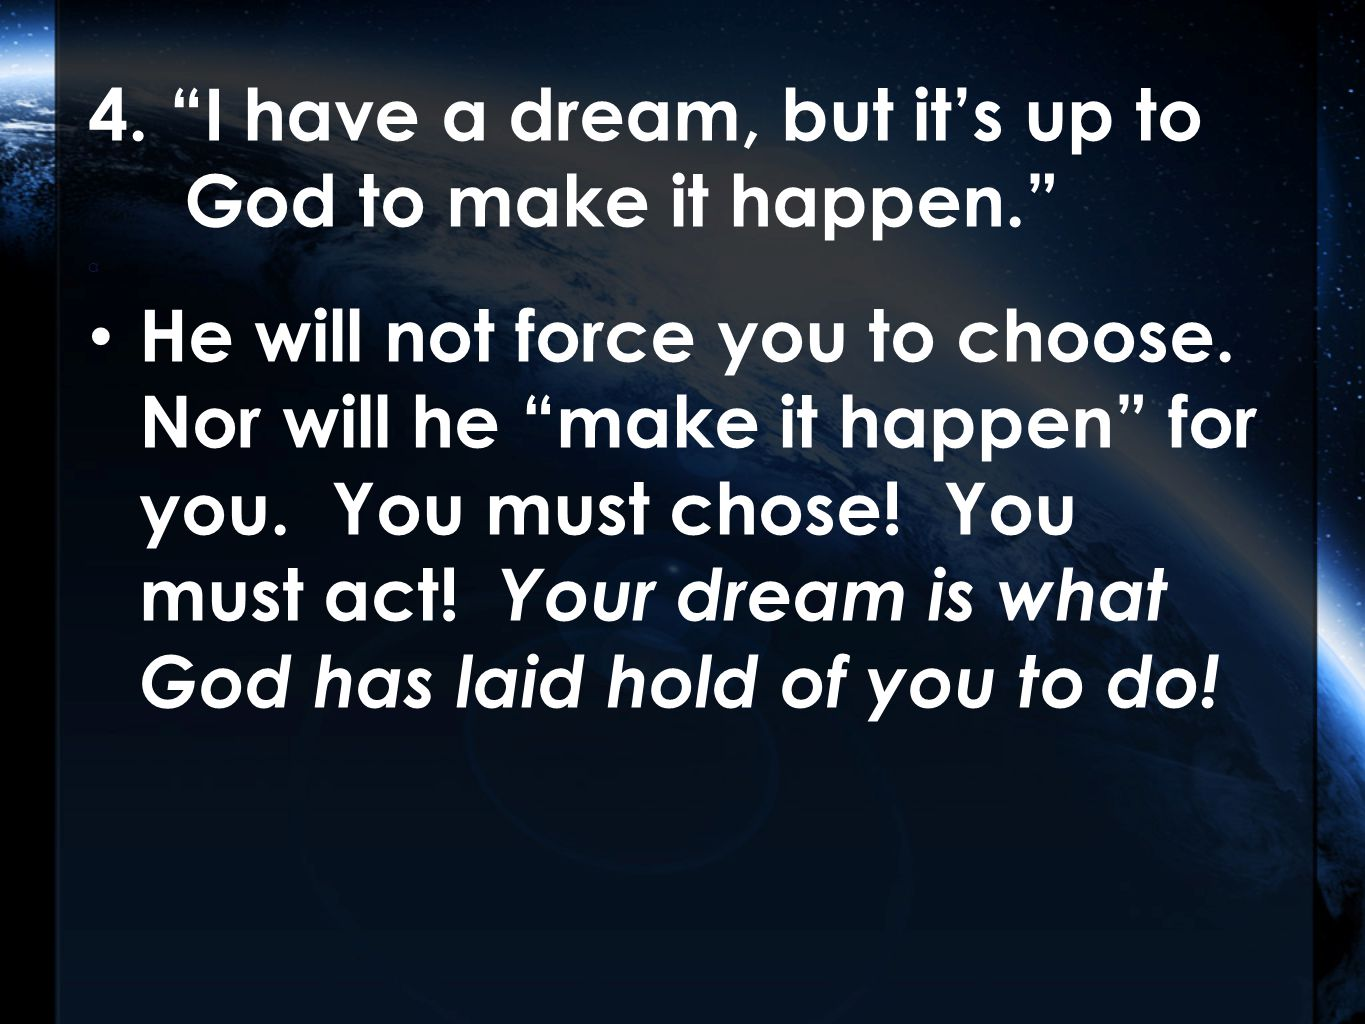 4. I have a dream, but it's up to God to make it happen. a He will not force you to choose.